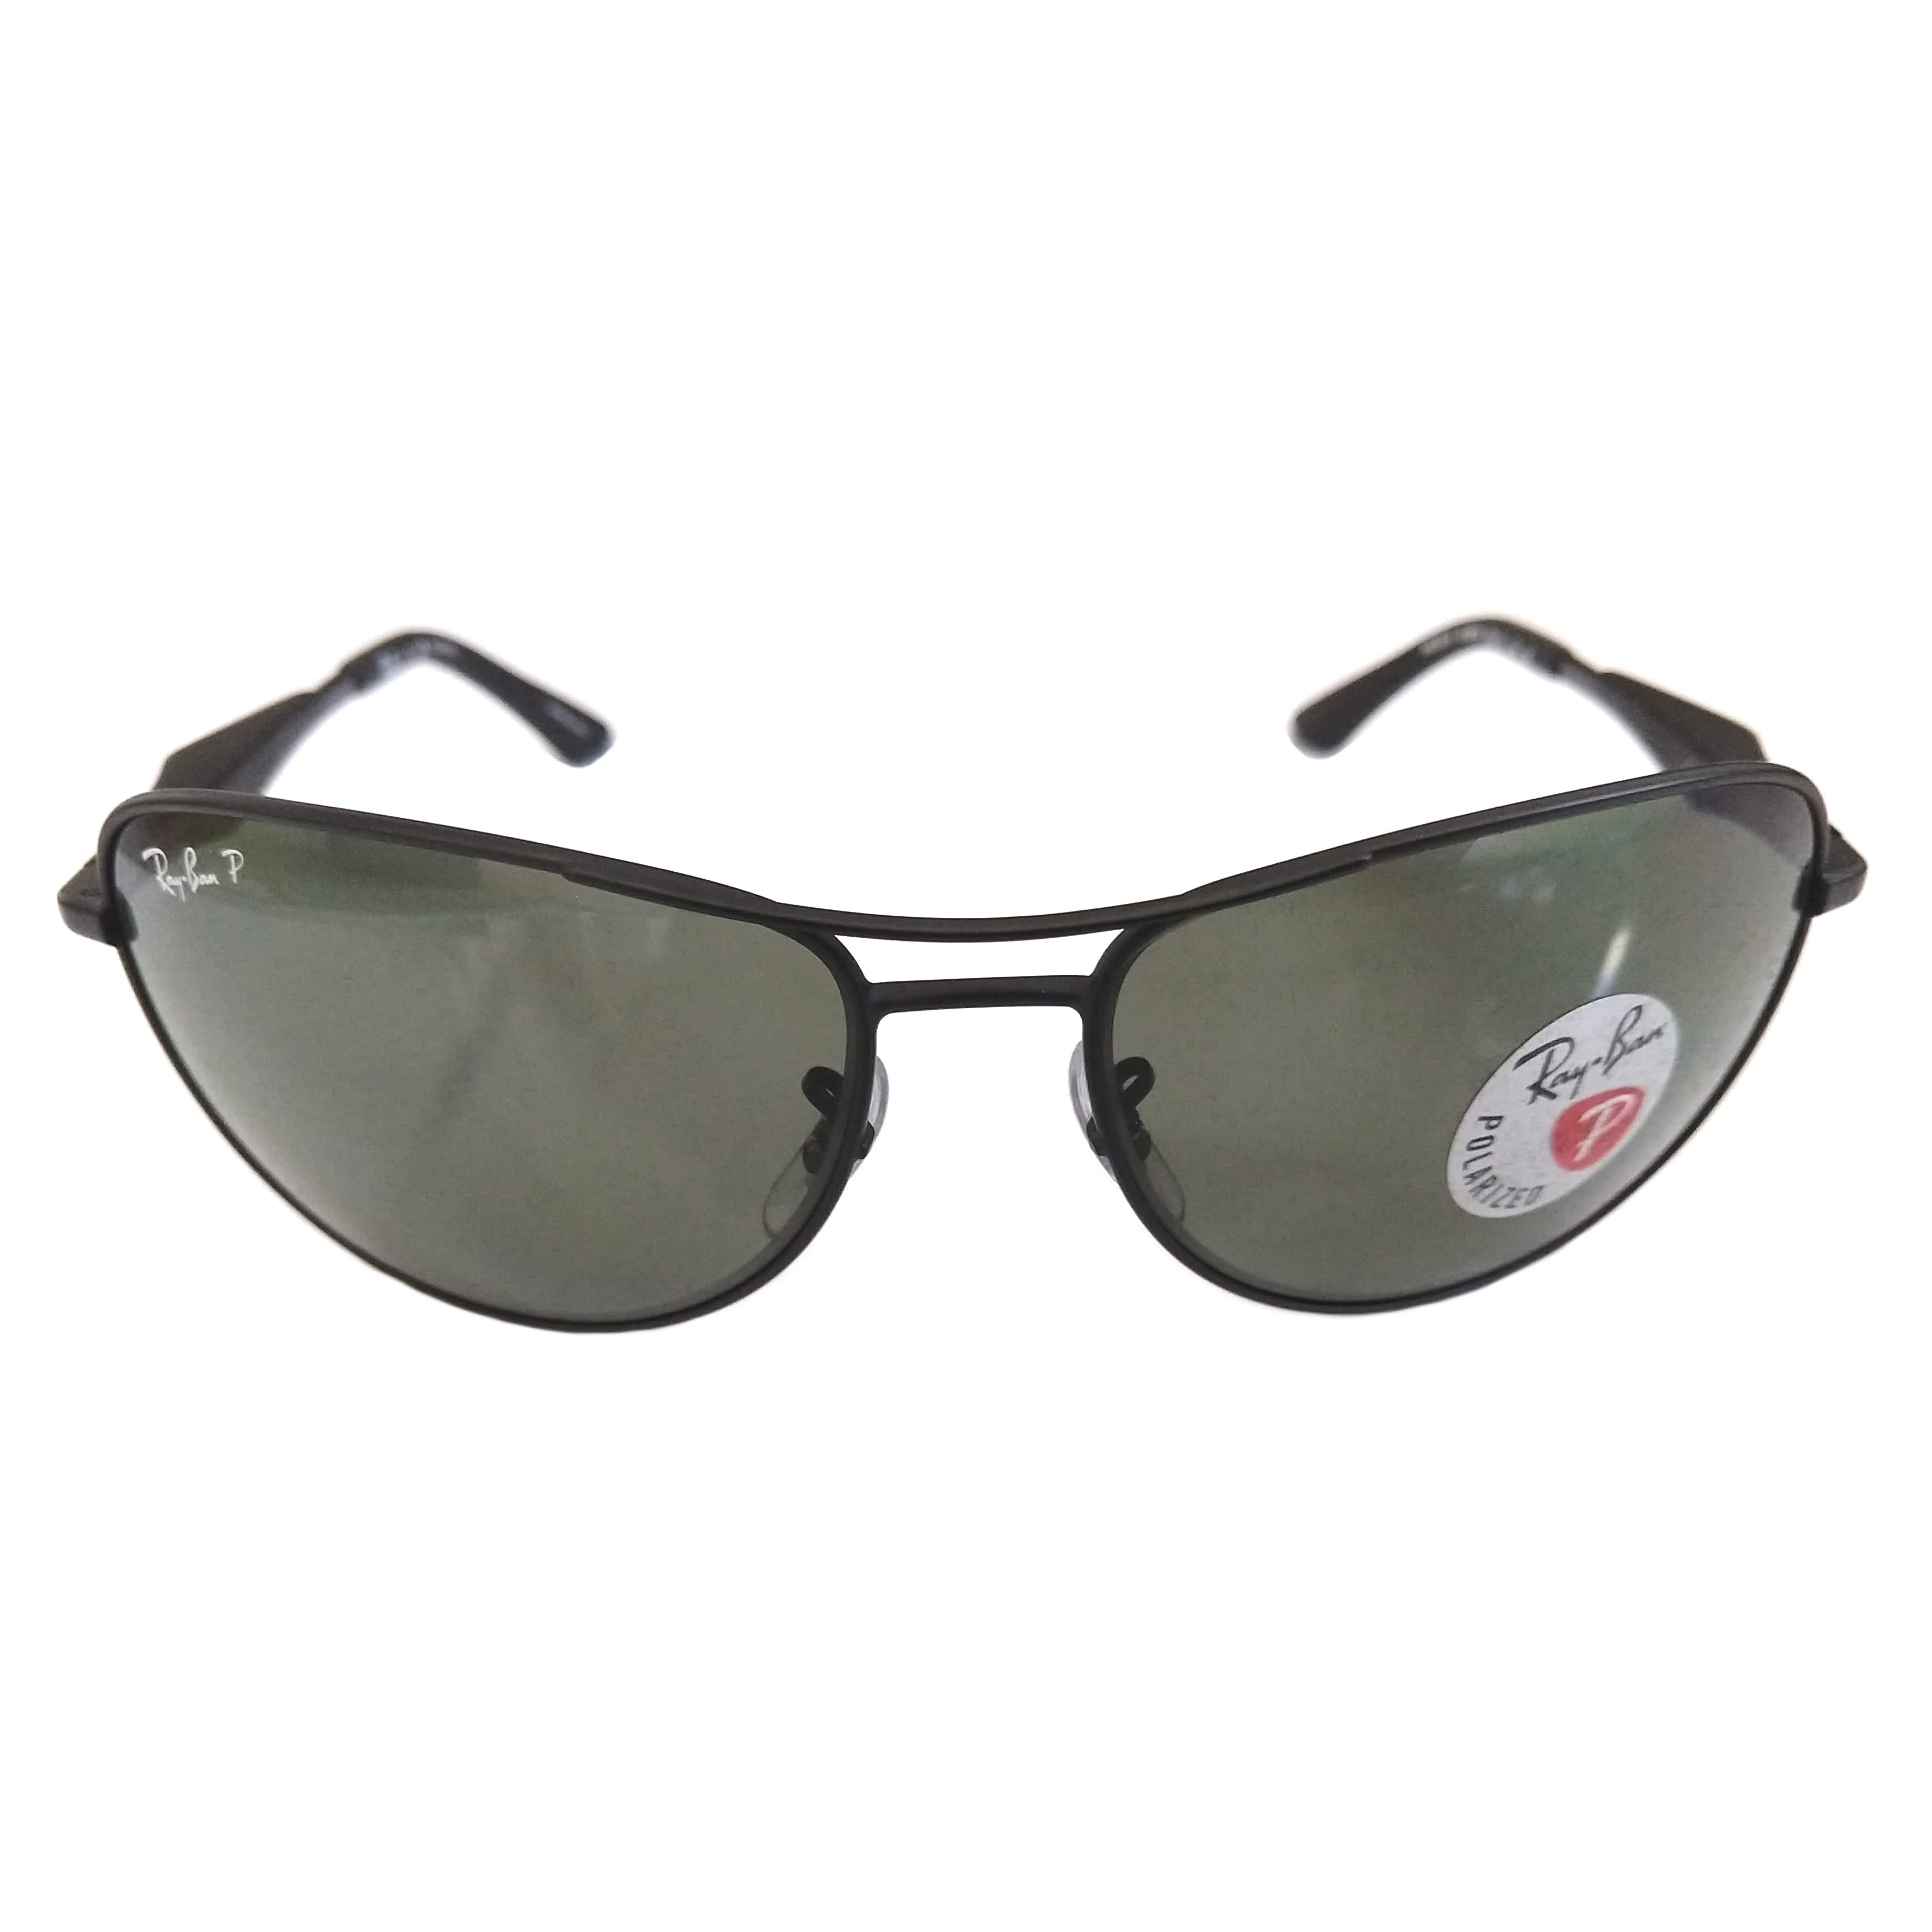 Ray Ban Aviator Sunglasses Matte Black Frame Polarized